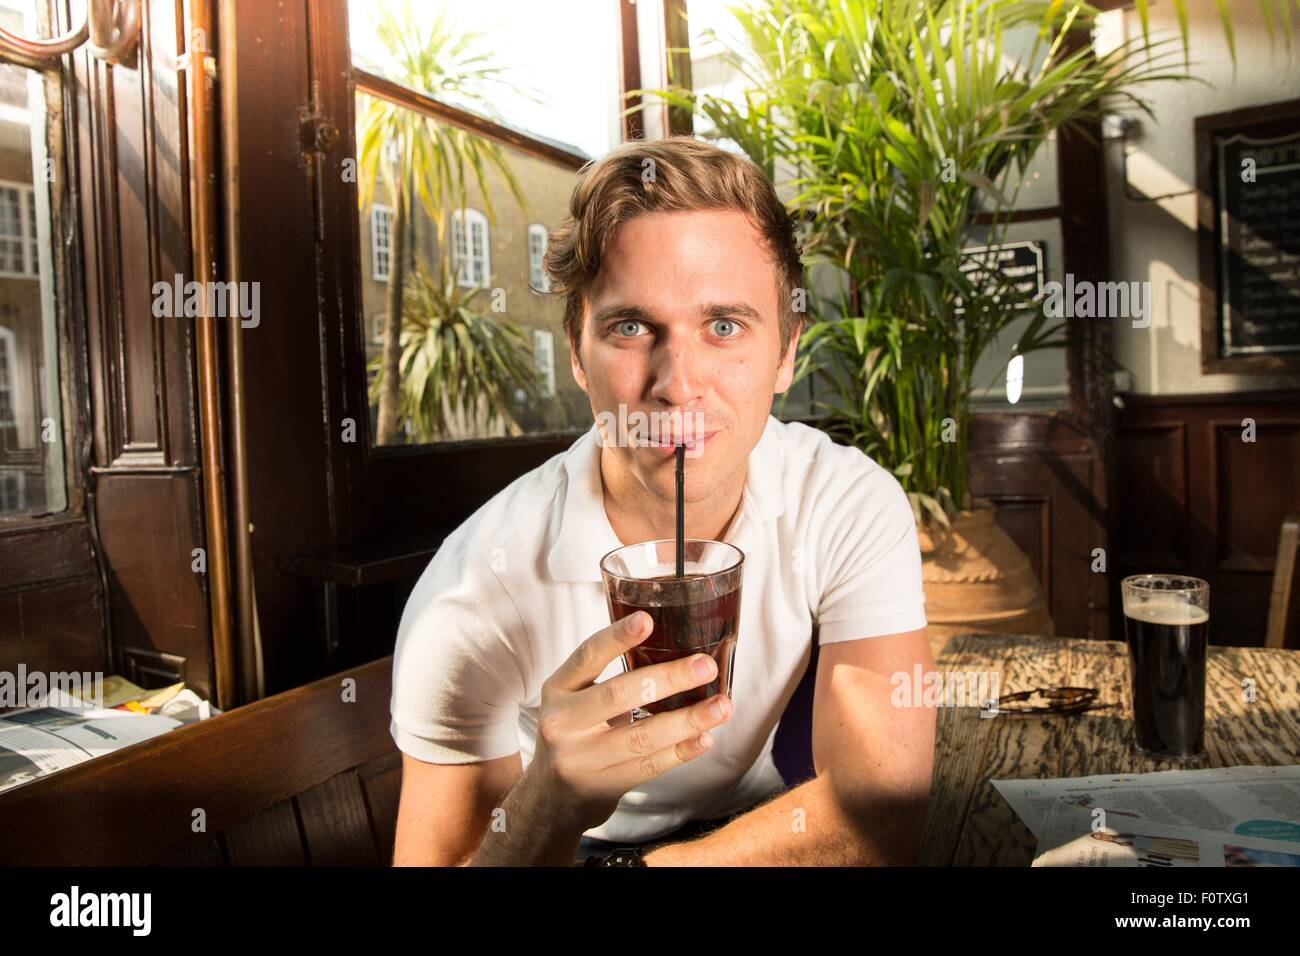 Portrait of young man drinking through straw, looking at camera - Stock Image